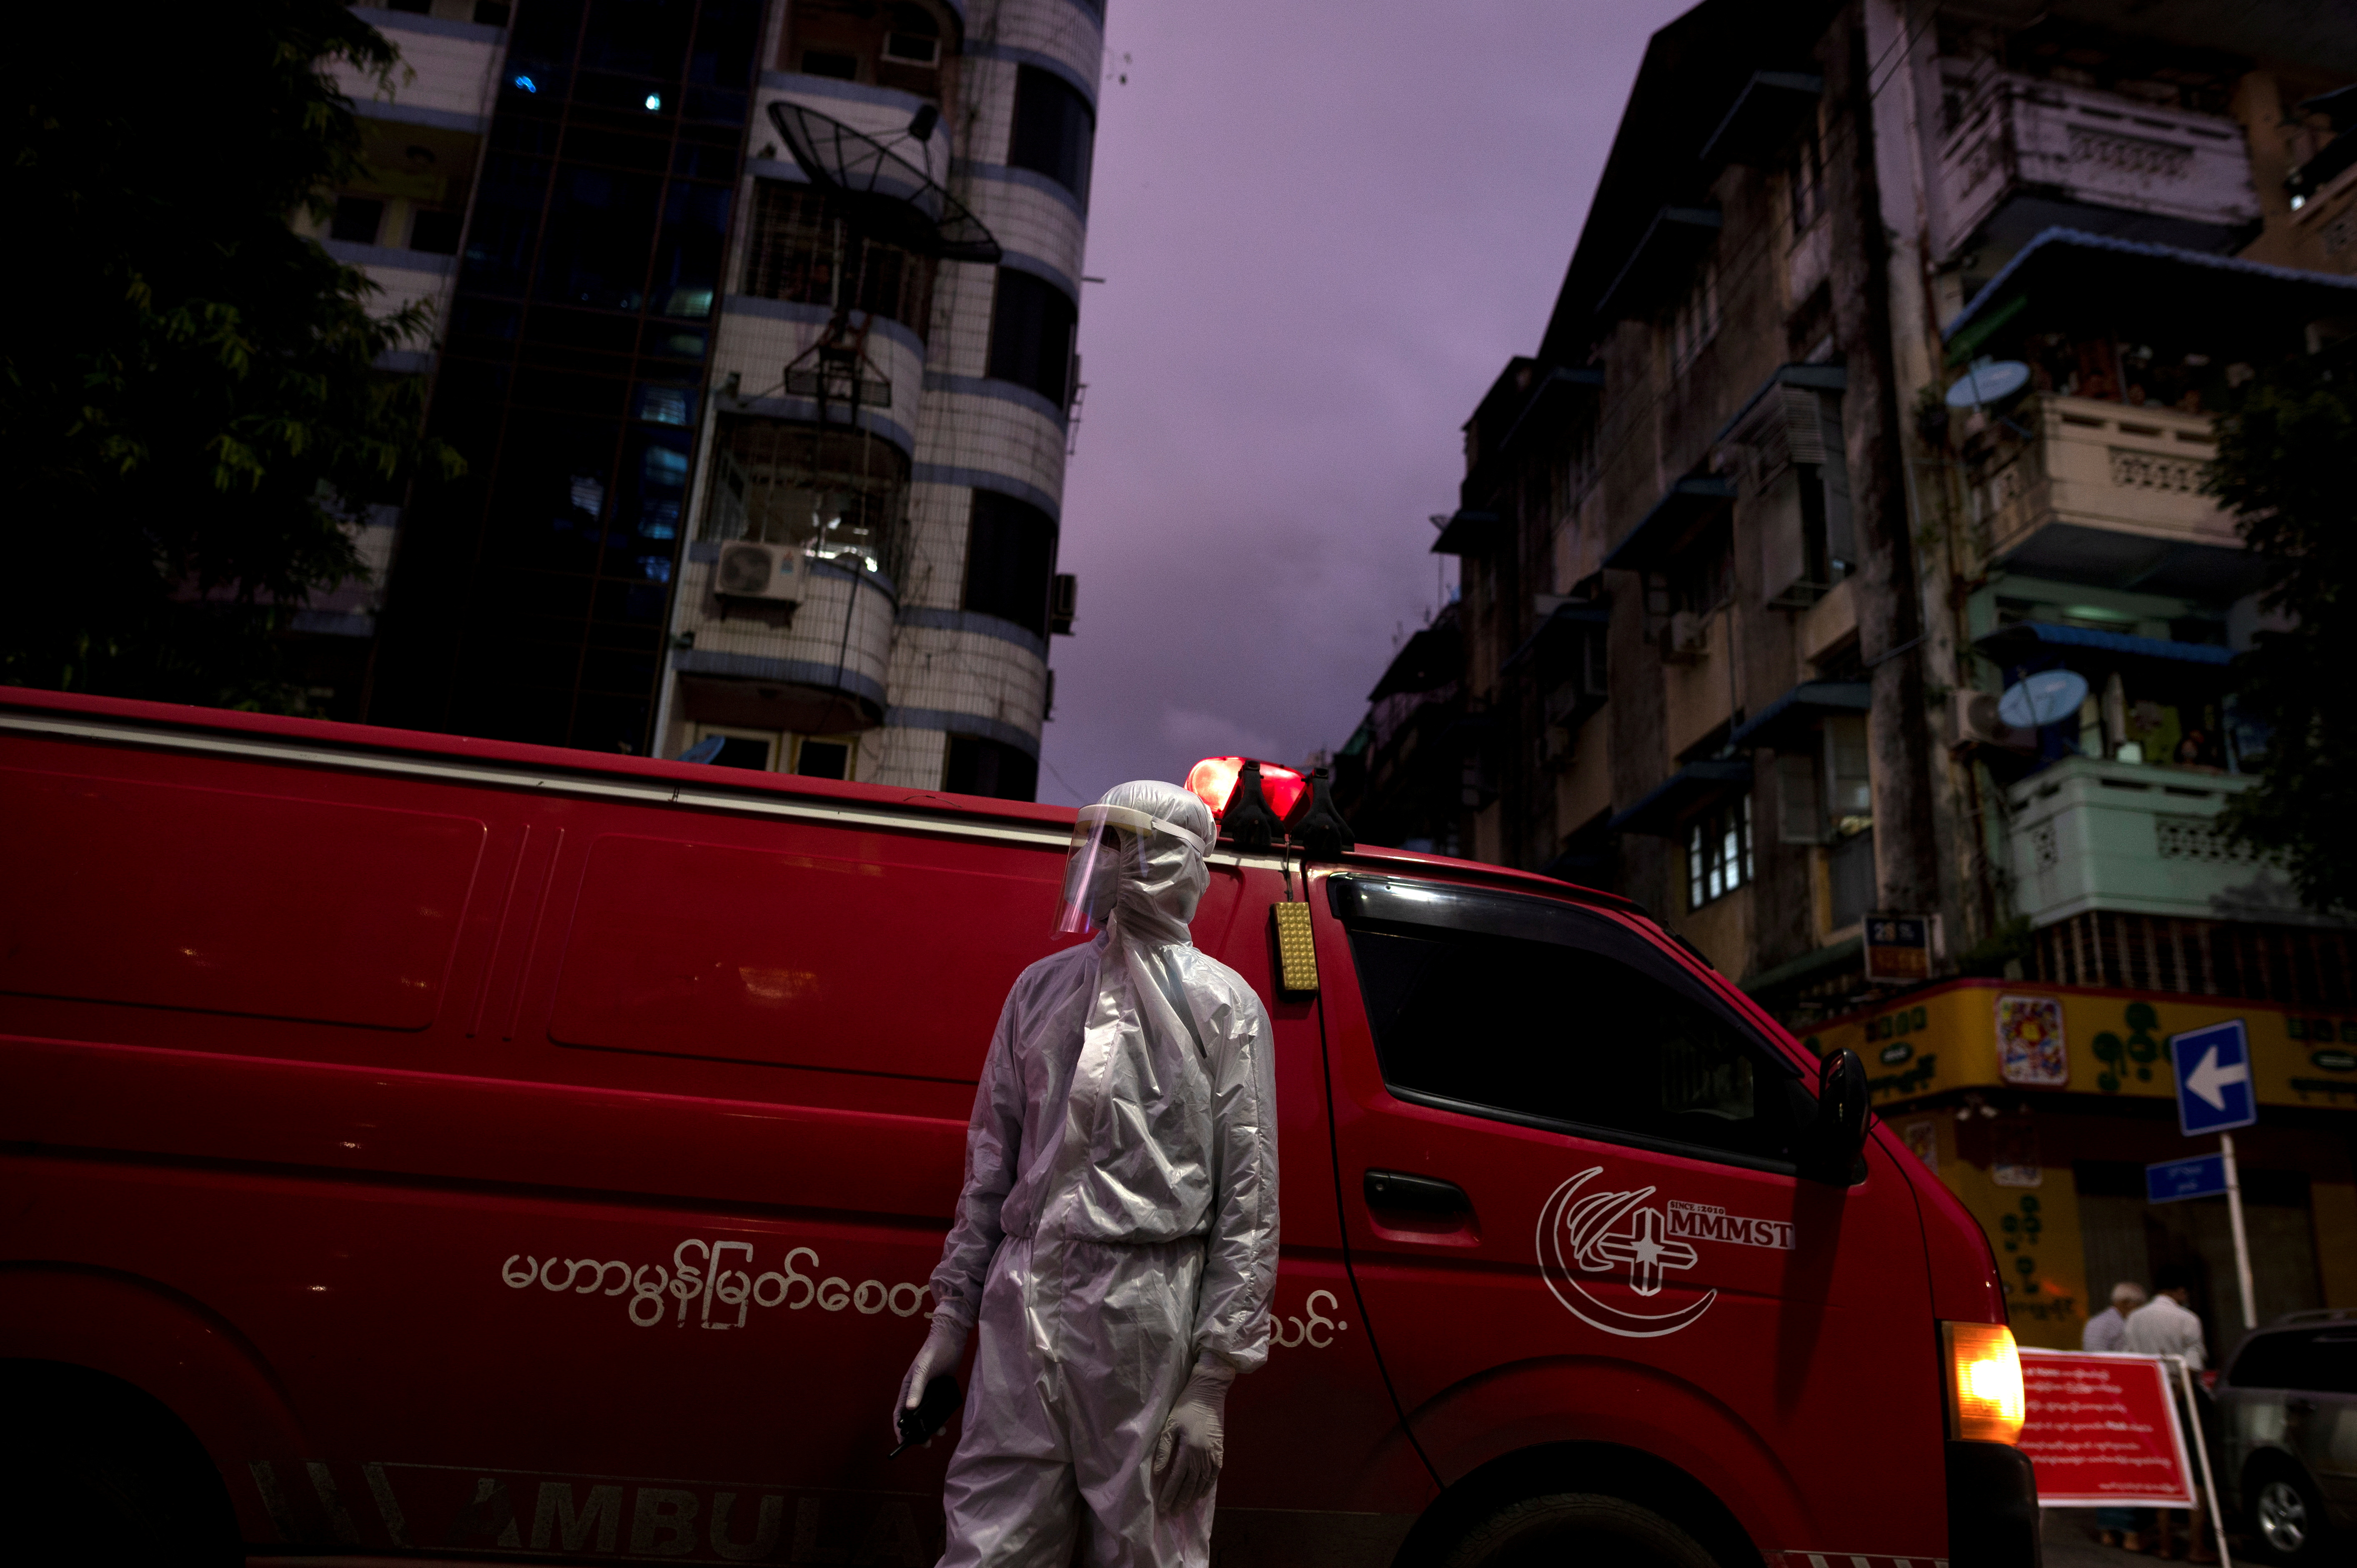 A medical staff wearing a protective suit stands near an ambulance, amid the outbreak of the coronavirus disease (COVID-19), in Yangon, Myanmar, September 27, 2020. REUTERS/Shwe Paw Mya Tin/File Photo/File Photo